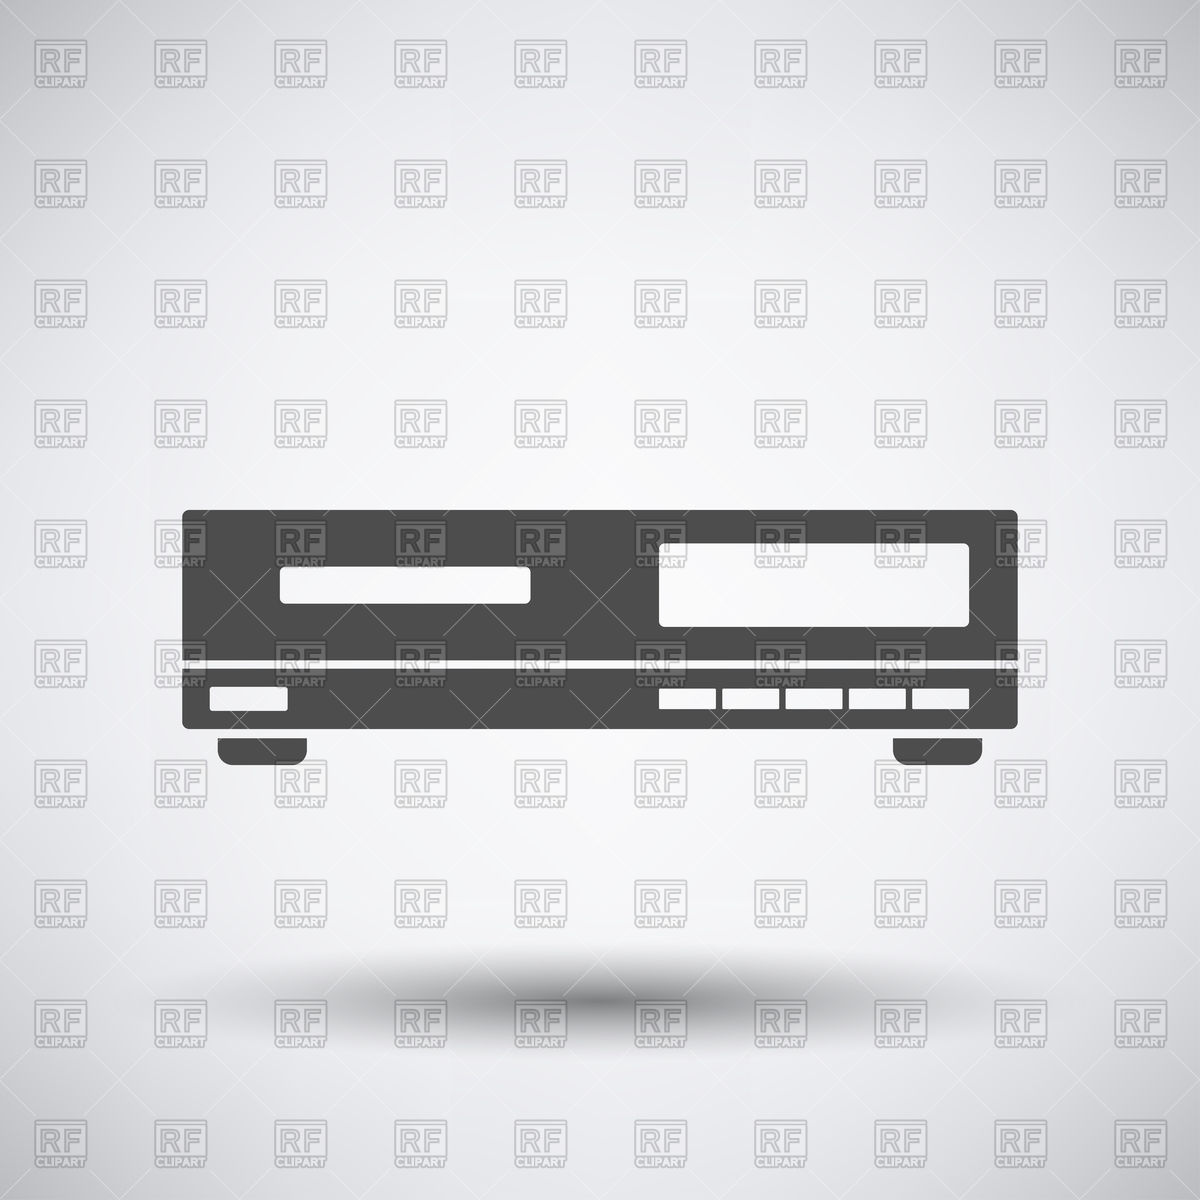 Video cassette recorder (videotape recorder) or DVD player icon.